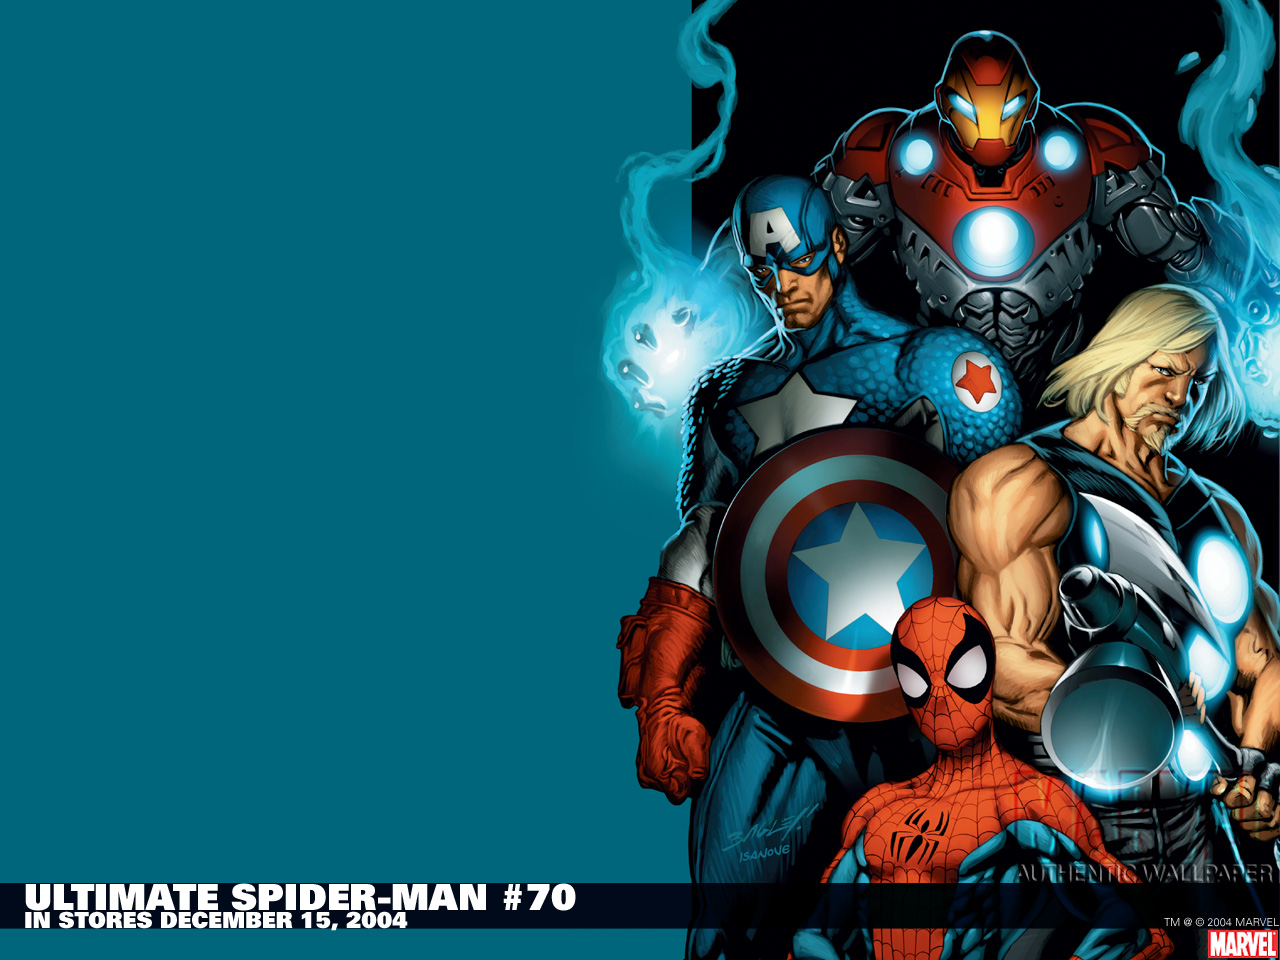 Digital HD Wallpapers Amazing Marvel HQ Wallpapers Pack 1280x960